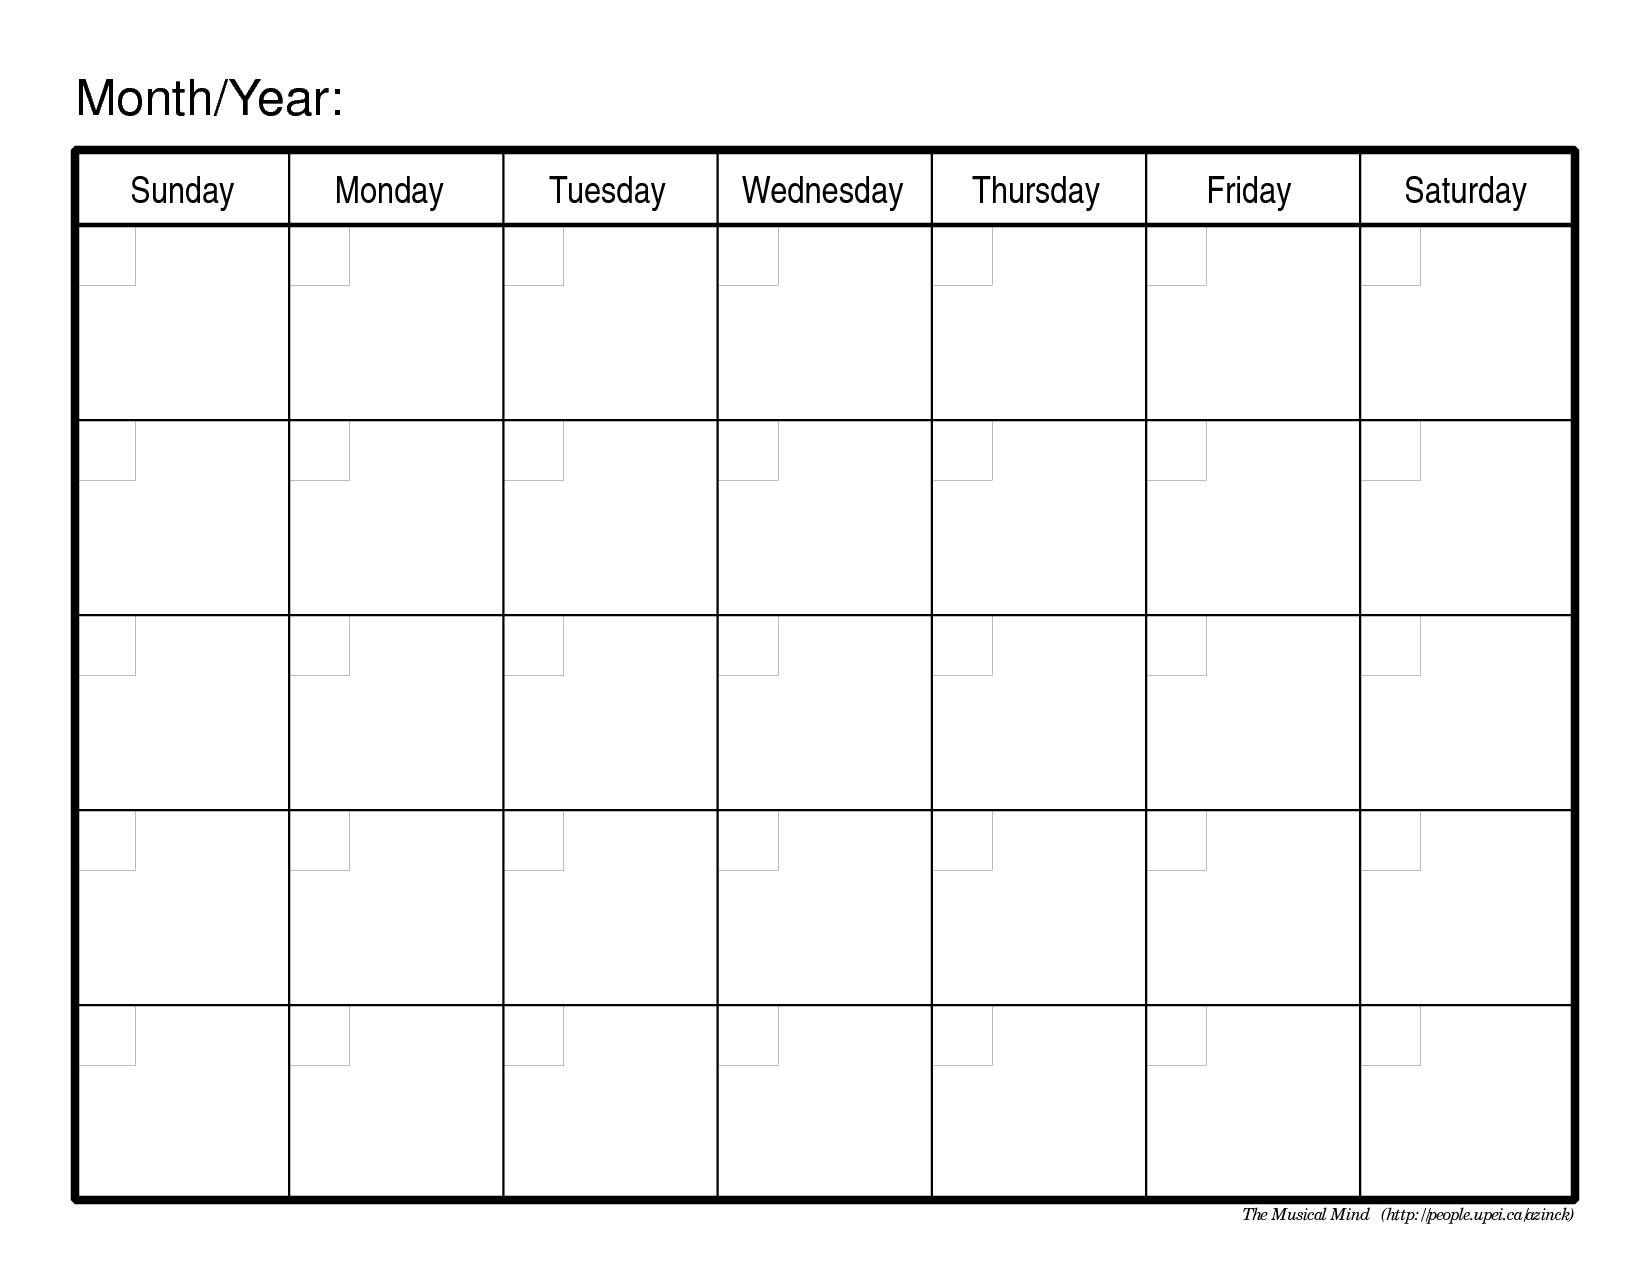 Month Calendar Template Word  Bolan.horizonconsulting.co pertaining to Blank Calendar Template Word